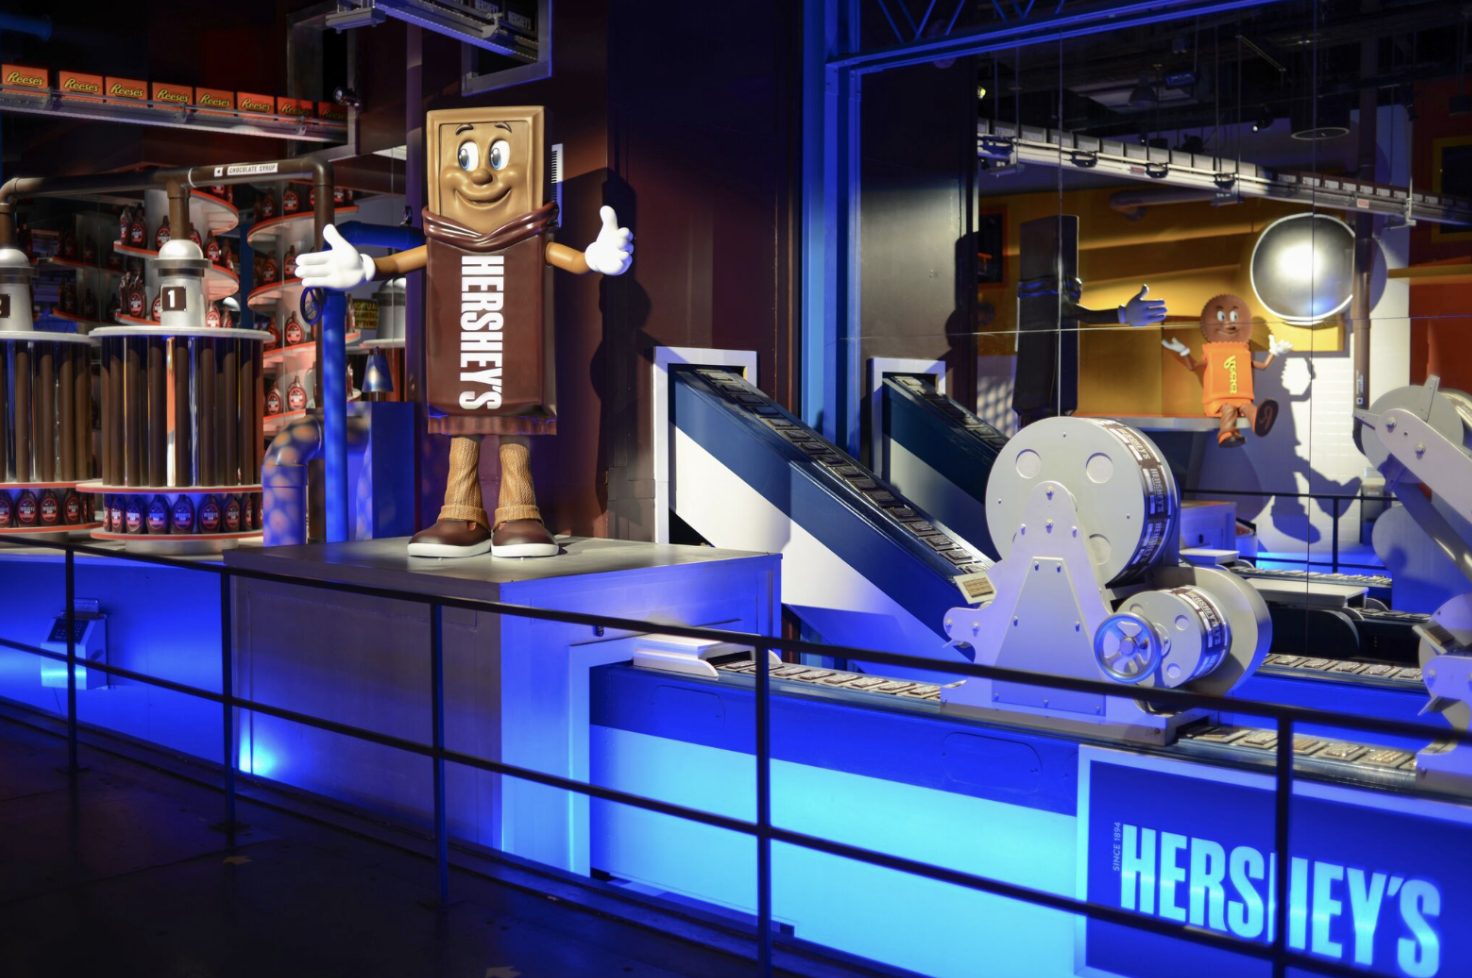 Hershey's Chocolate World Tour in Hershey, PA